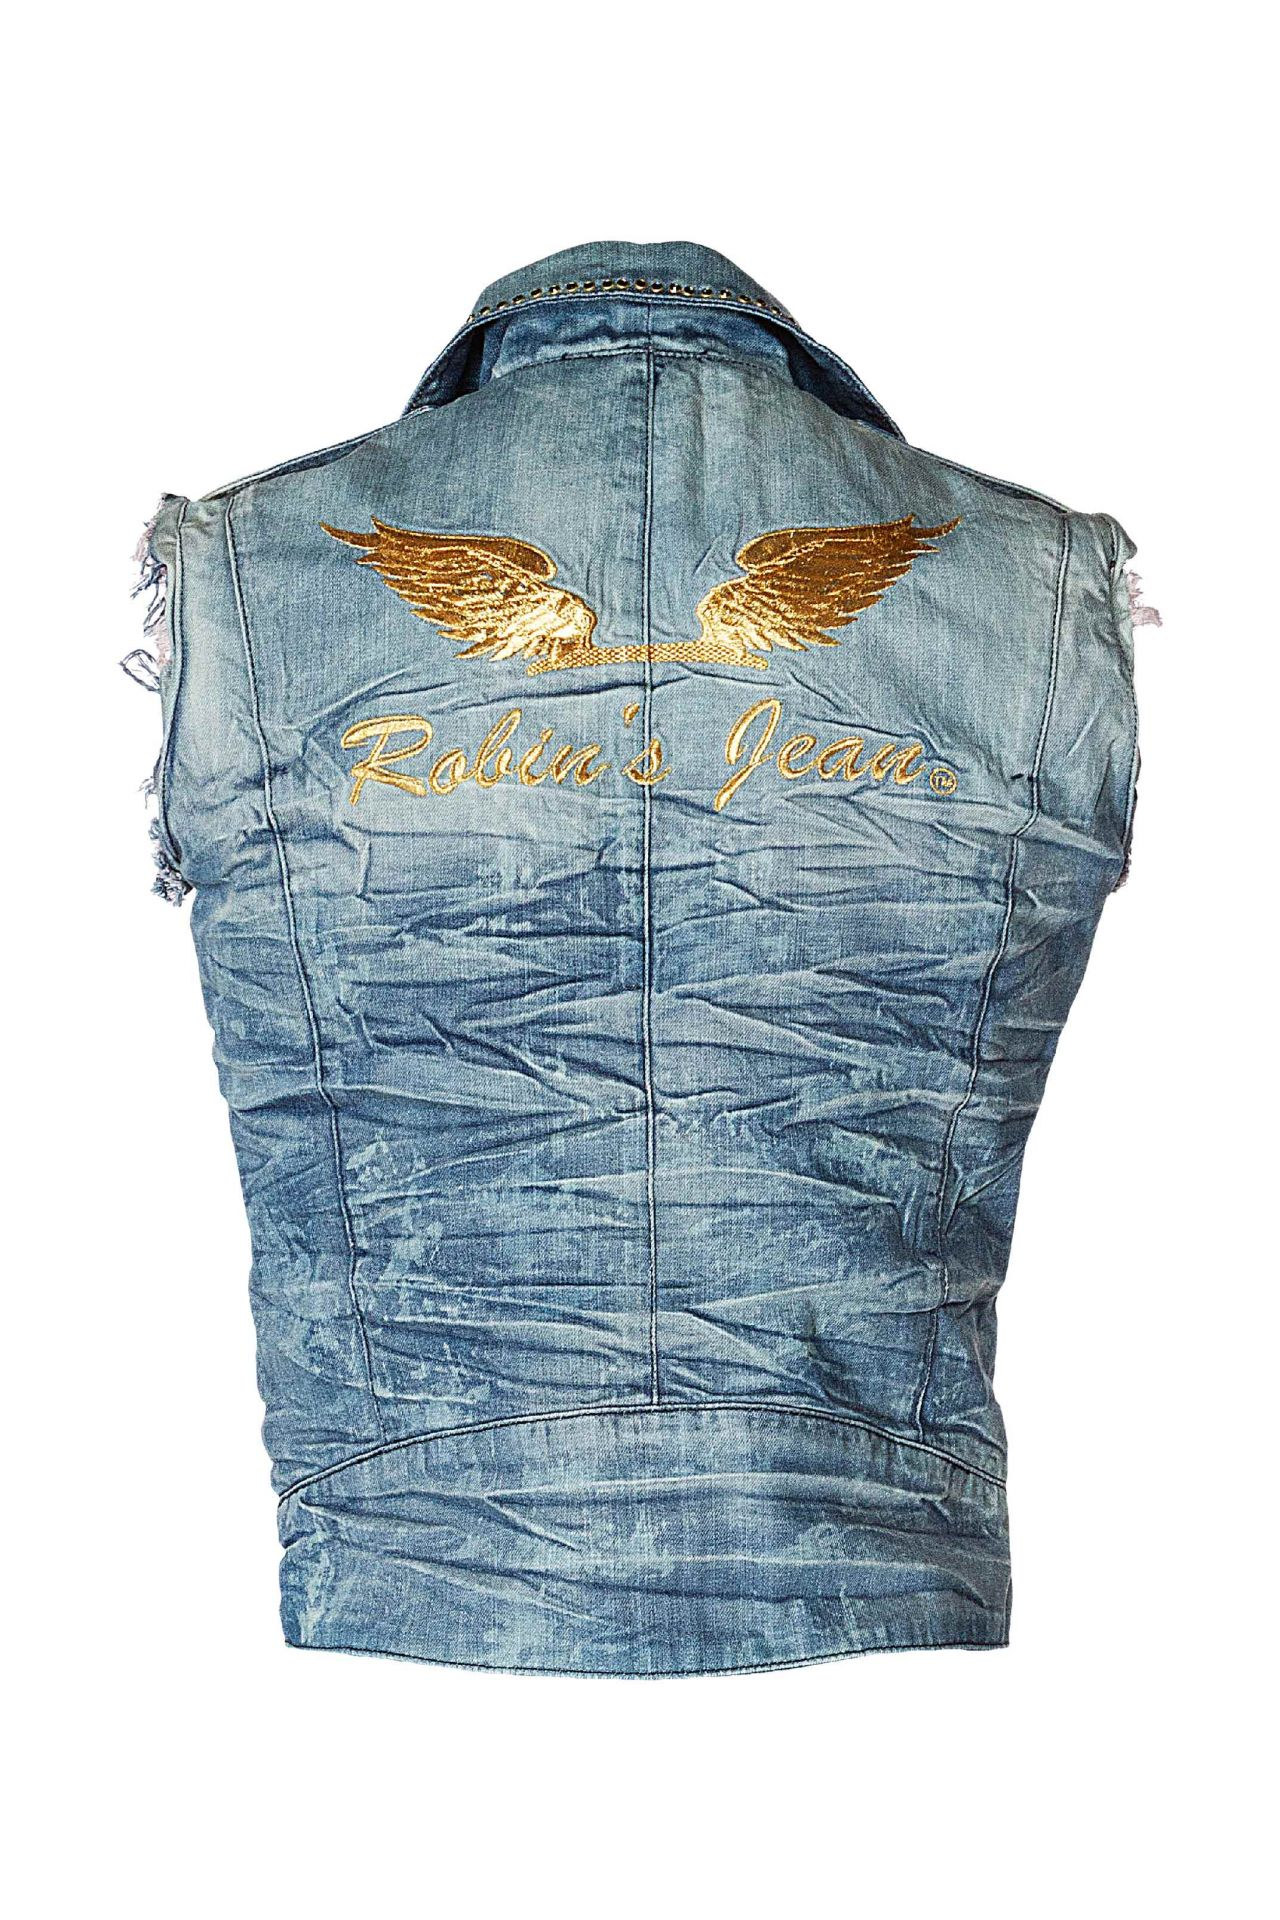 RAW EDGE BIKER VEST IN VINTAGE BLUE WITH CRYSTALS